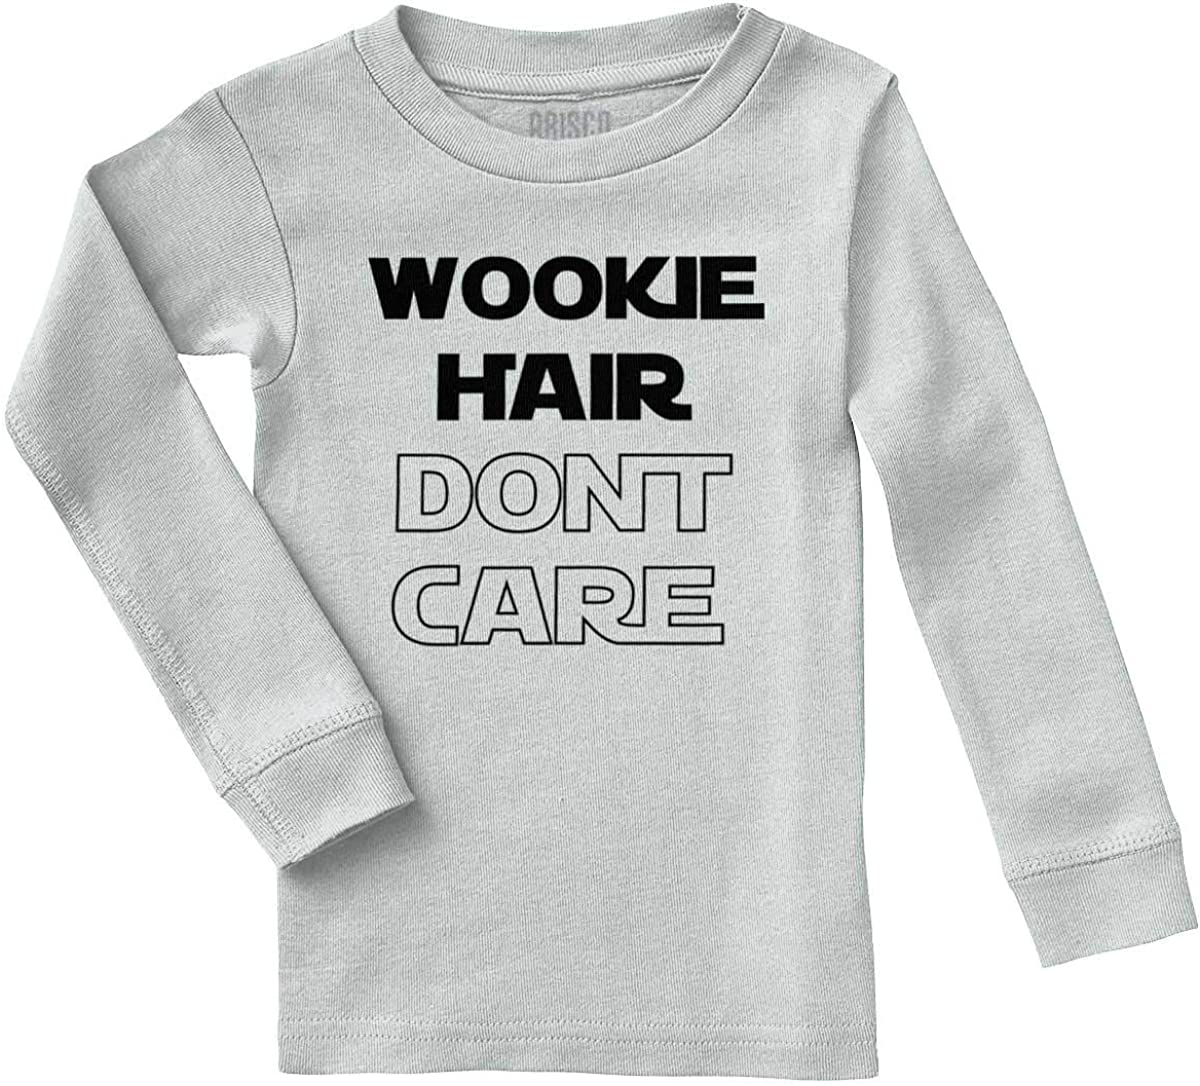 Brisco Brands Wookie Hair Don't Care Cute Nerdy Geeky Pajama Top